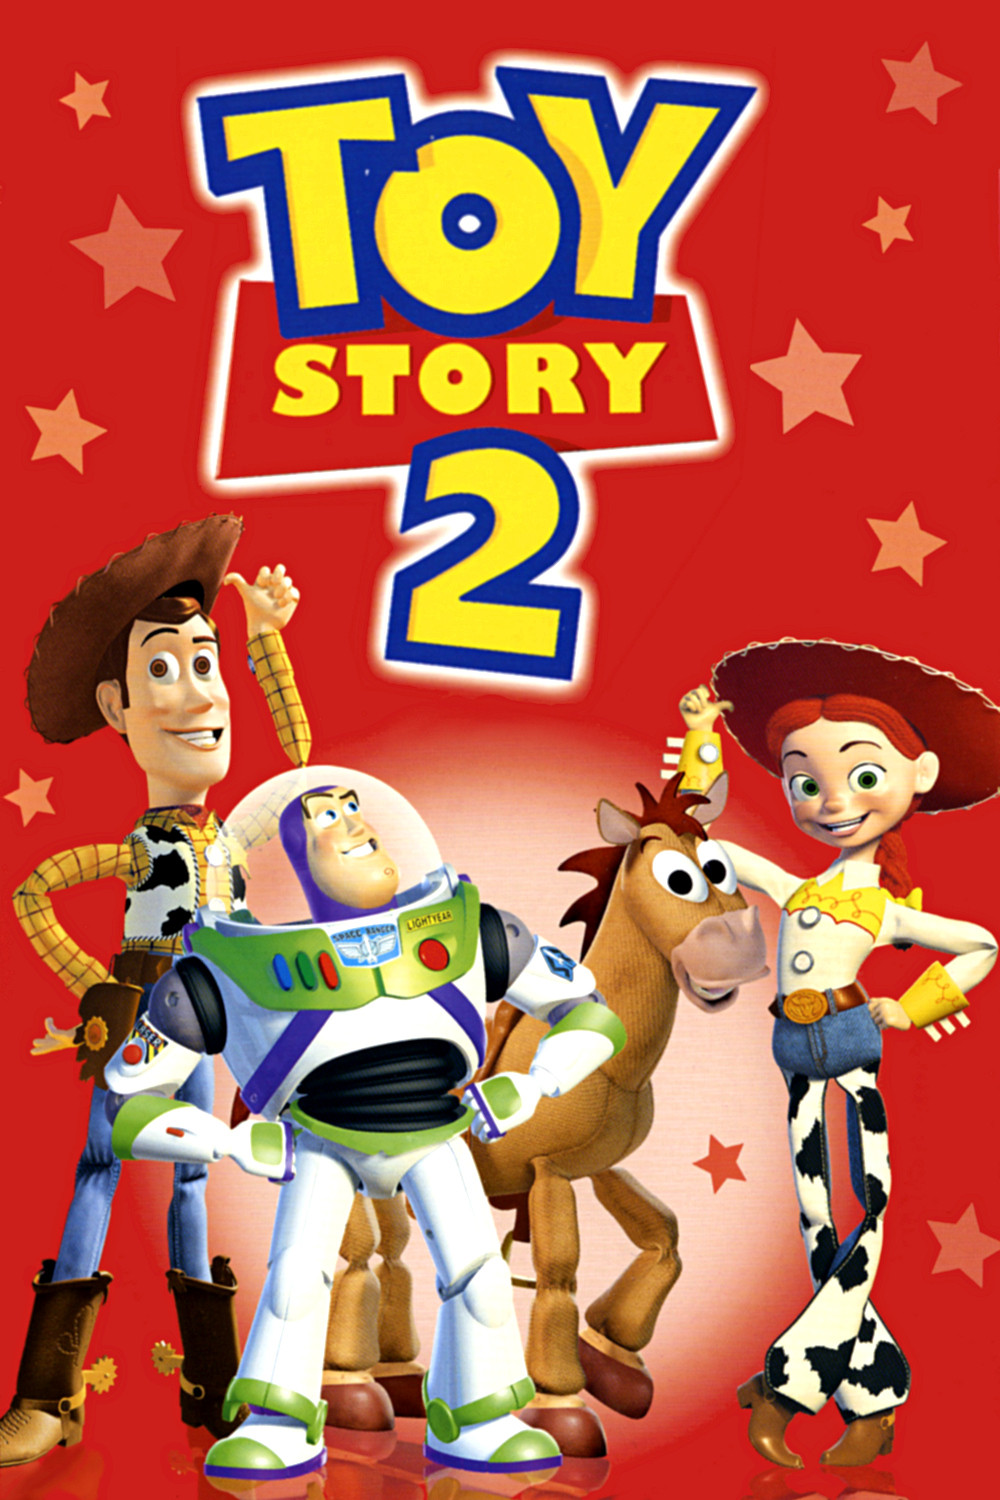 toy story 2 poster poster 1 adorocinema. Black Bedroom Furniture Sets. Home Design Ideas